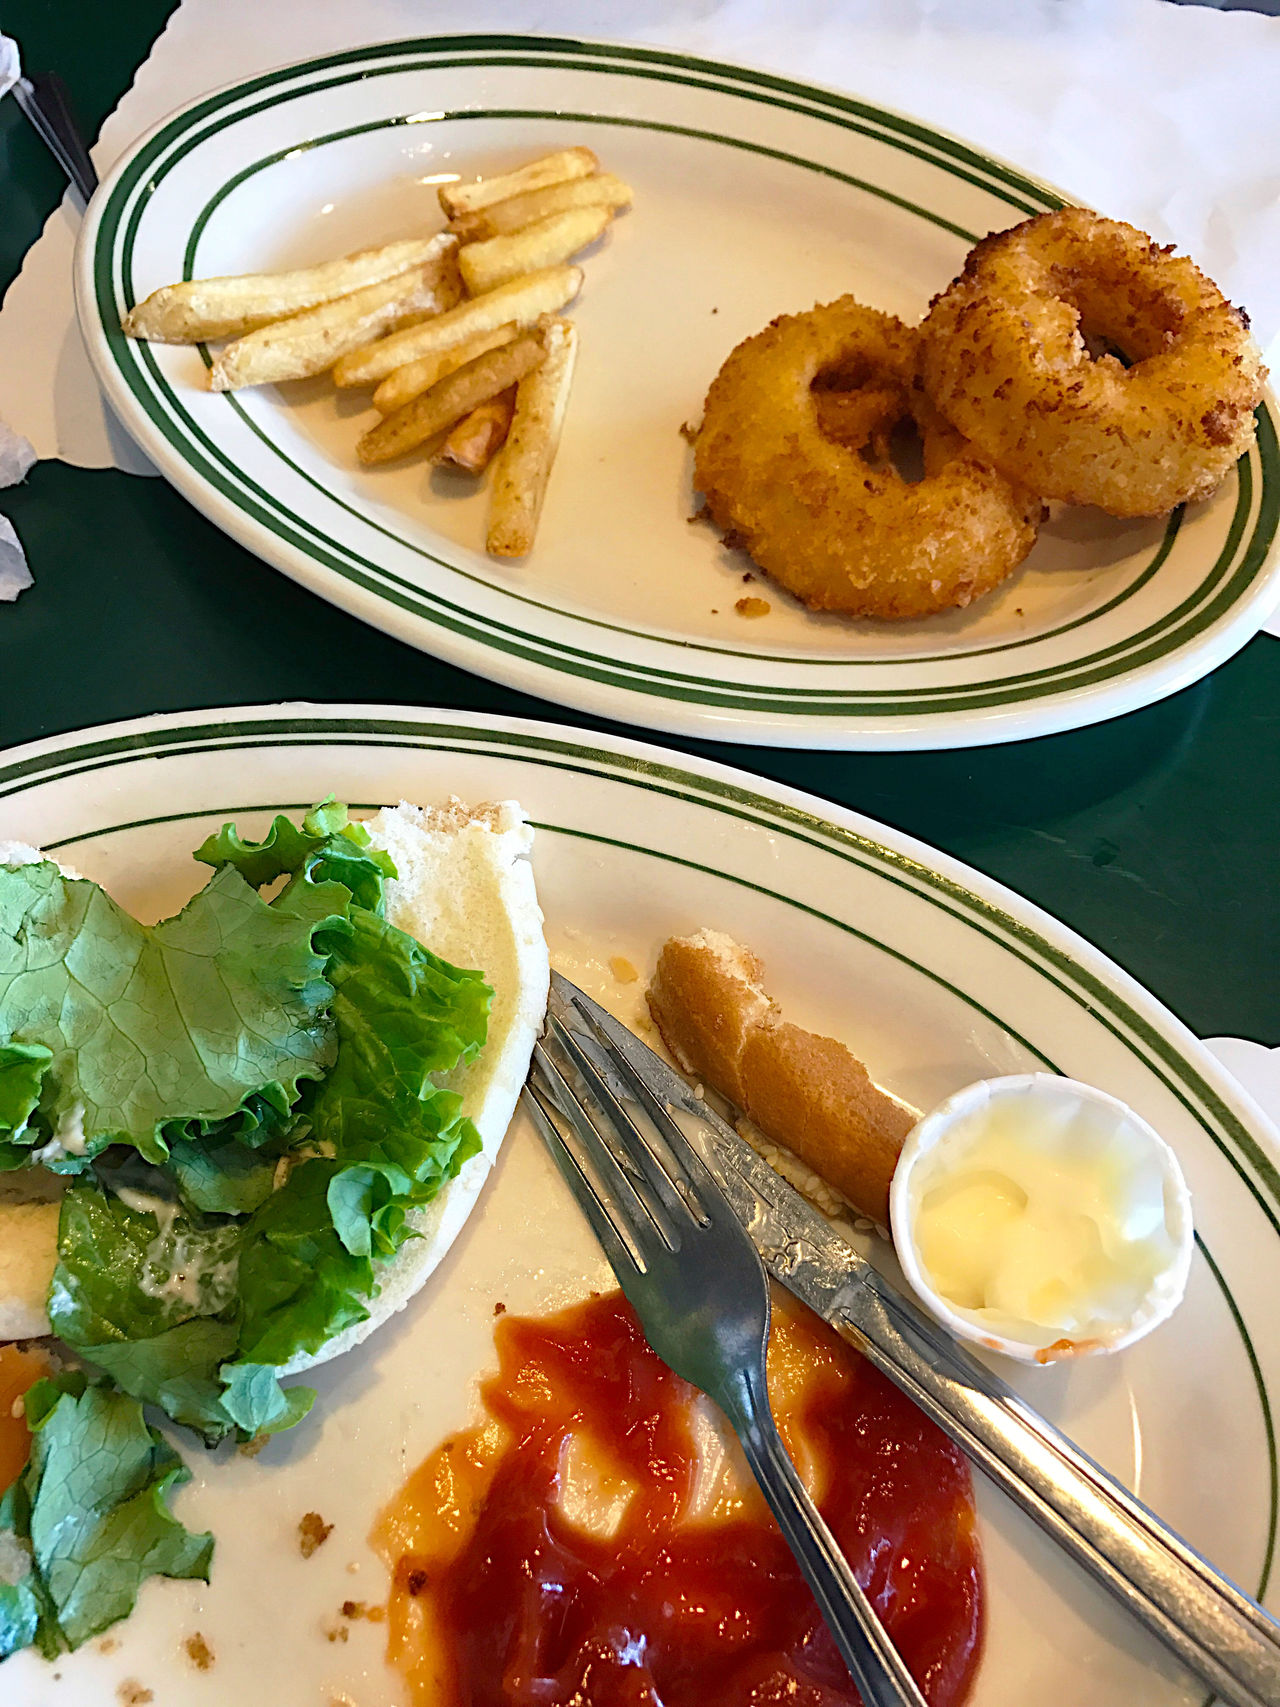 Condiments  Day Dinner Knife Dirty Dishes Eaten Finished Fork Fries Indoors  Ketchup Leftovers Lettuce Lunch Mayonnaise No People Onion Rings Overhead Phone Camera Platters Silverware  Table Textures